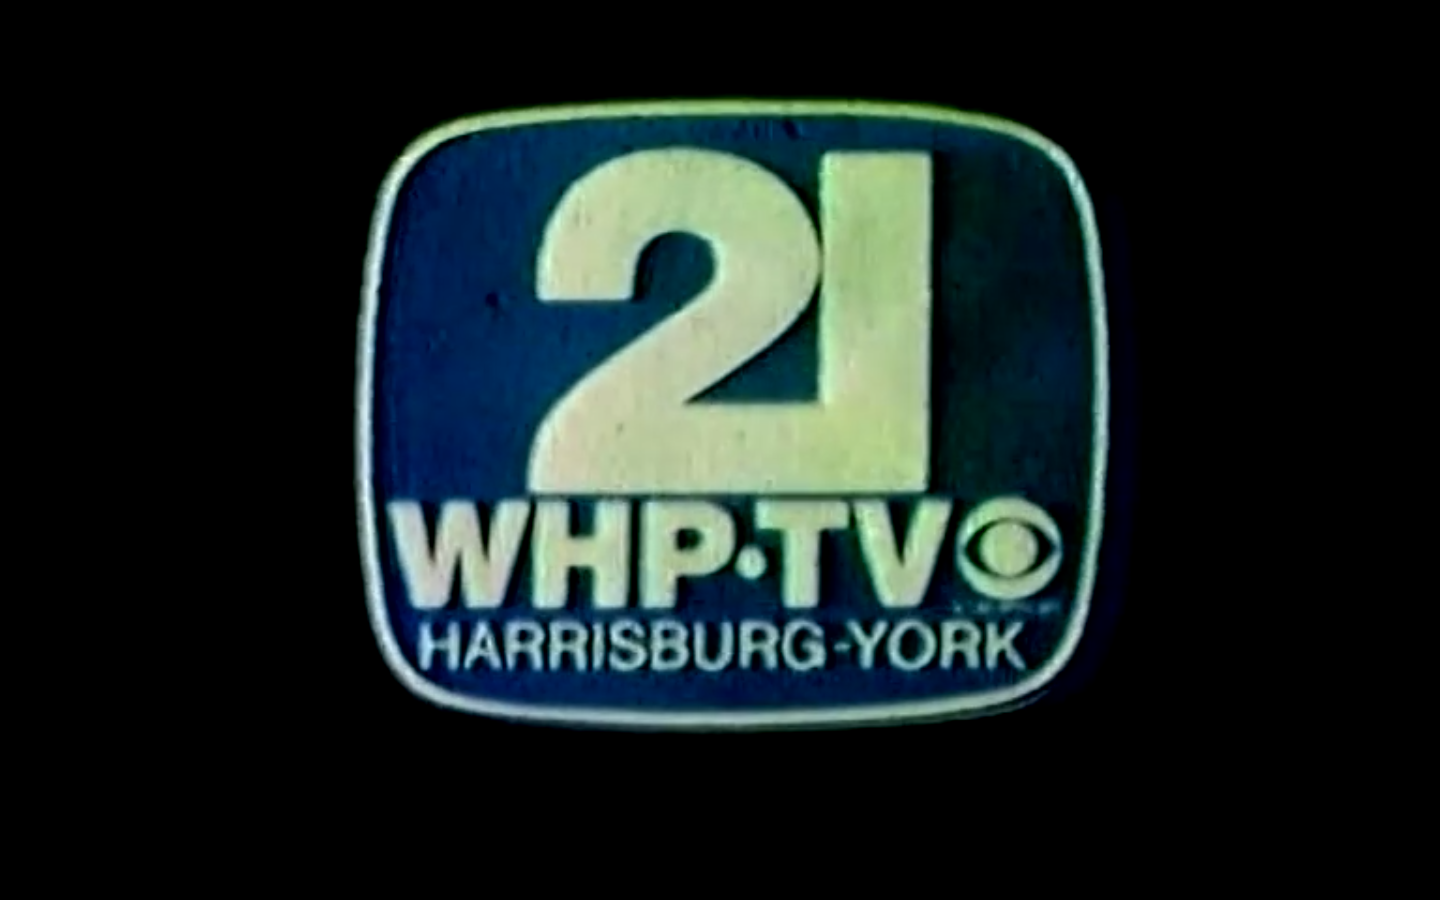 WHP-TV